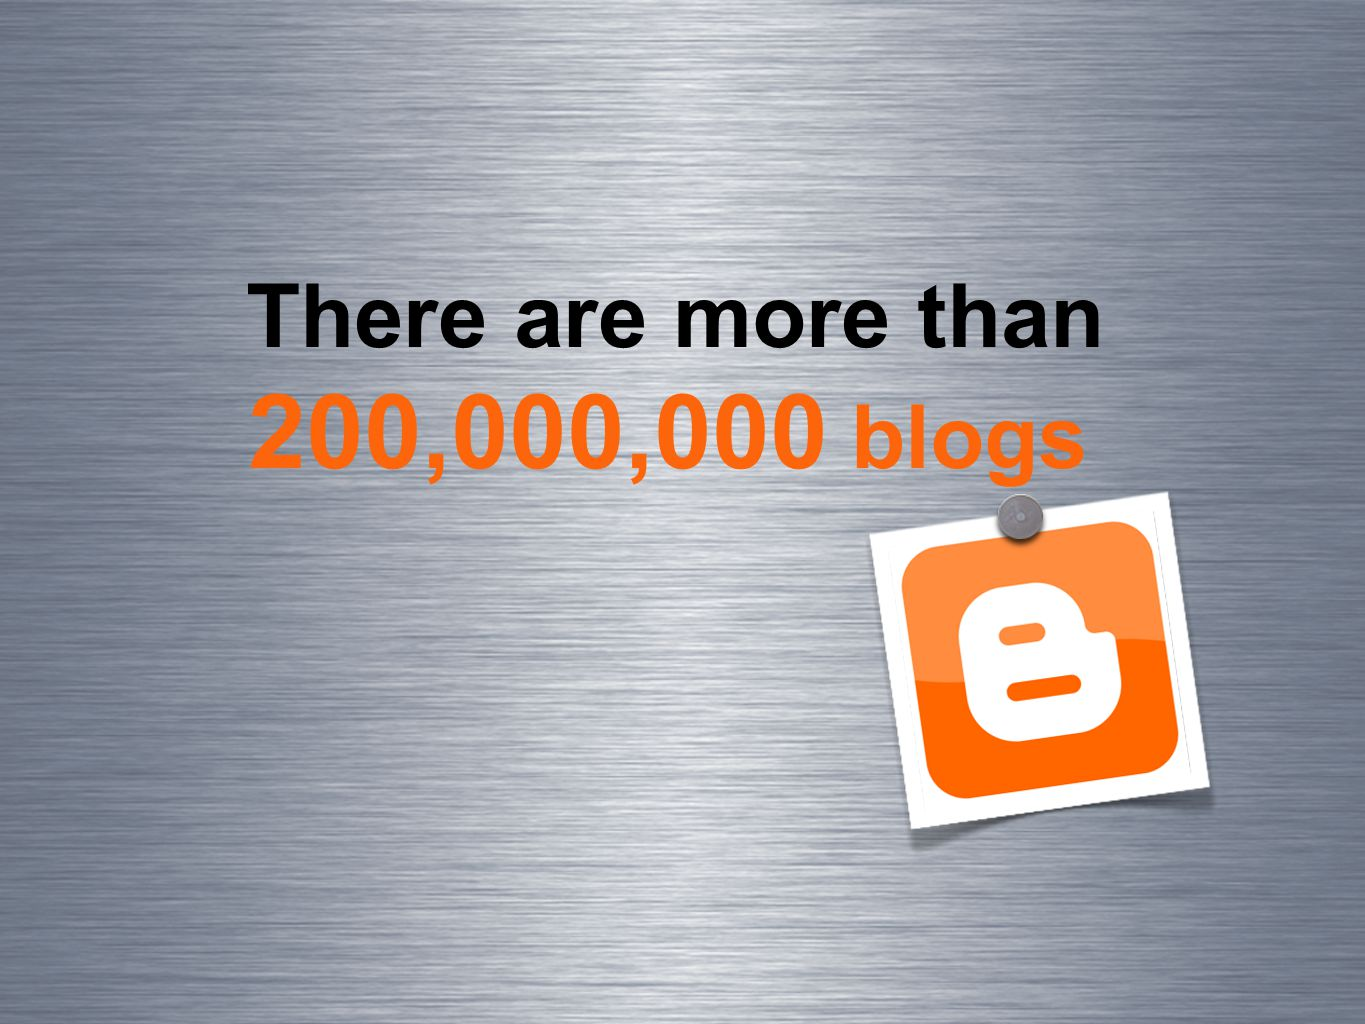 There are more than 200,000,000 blogs